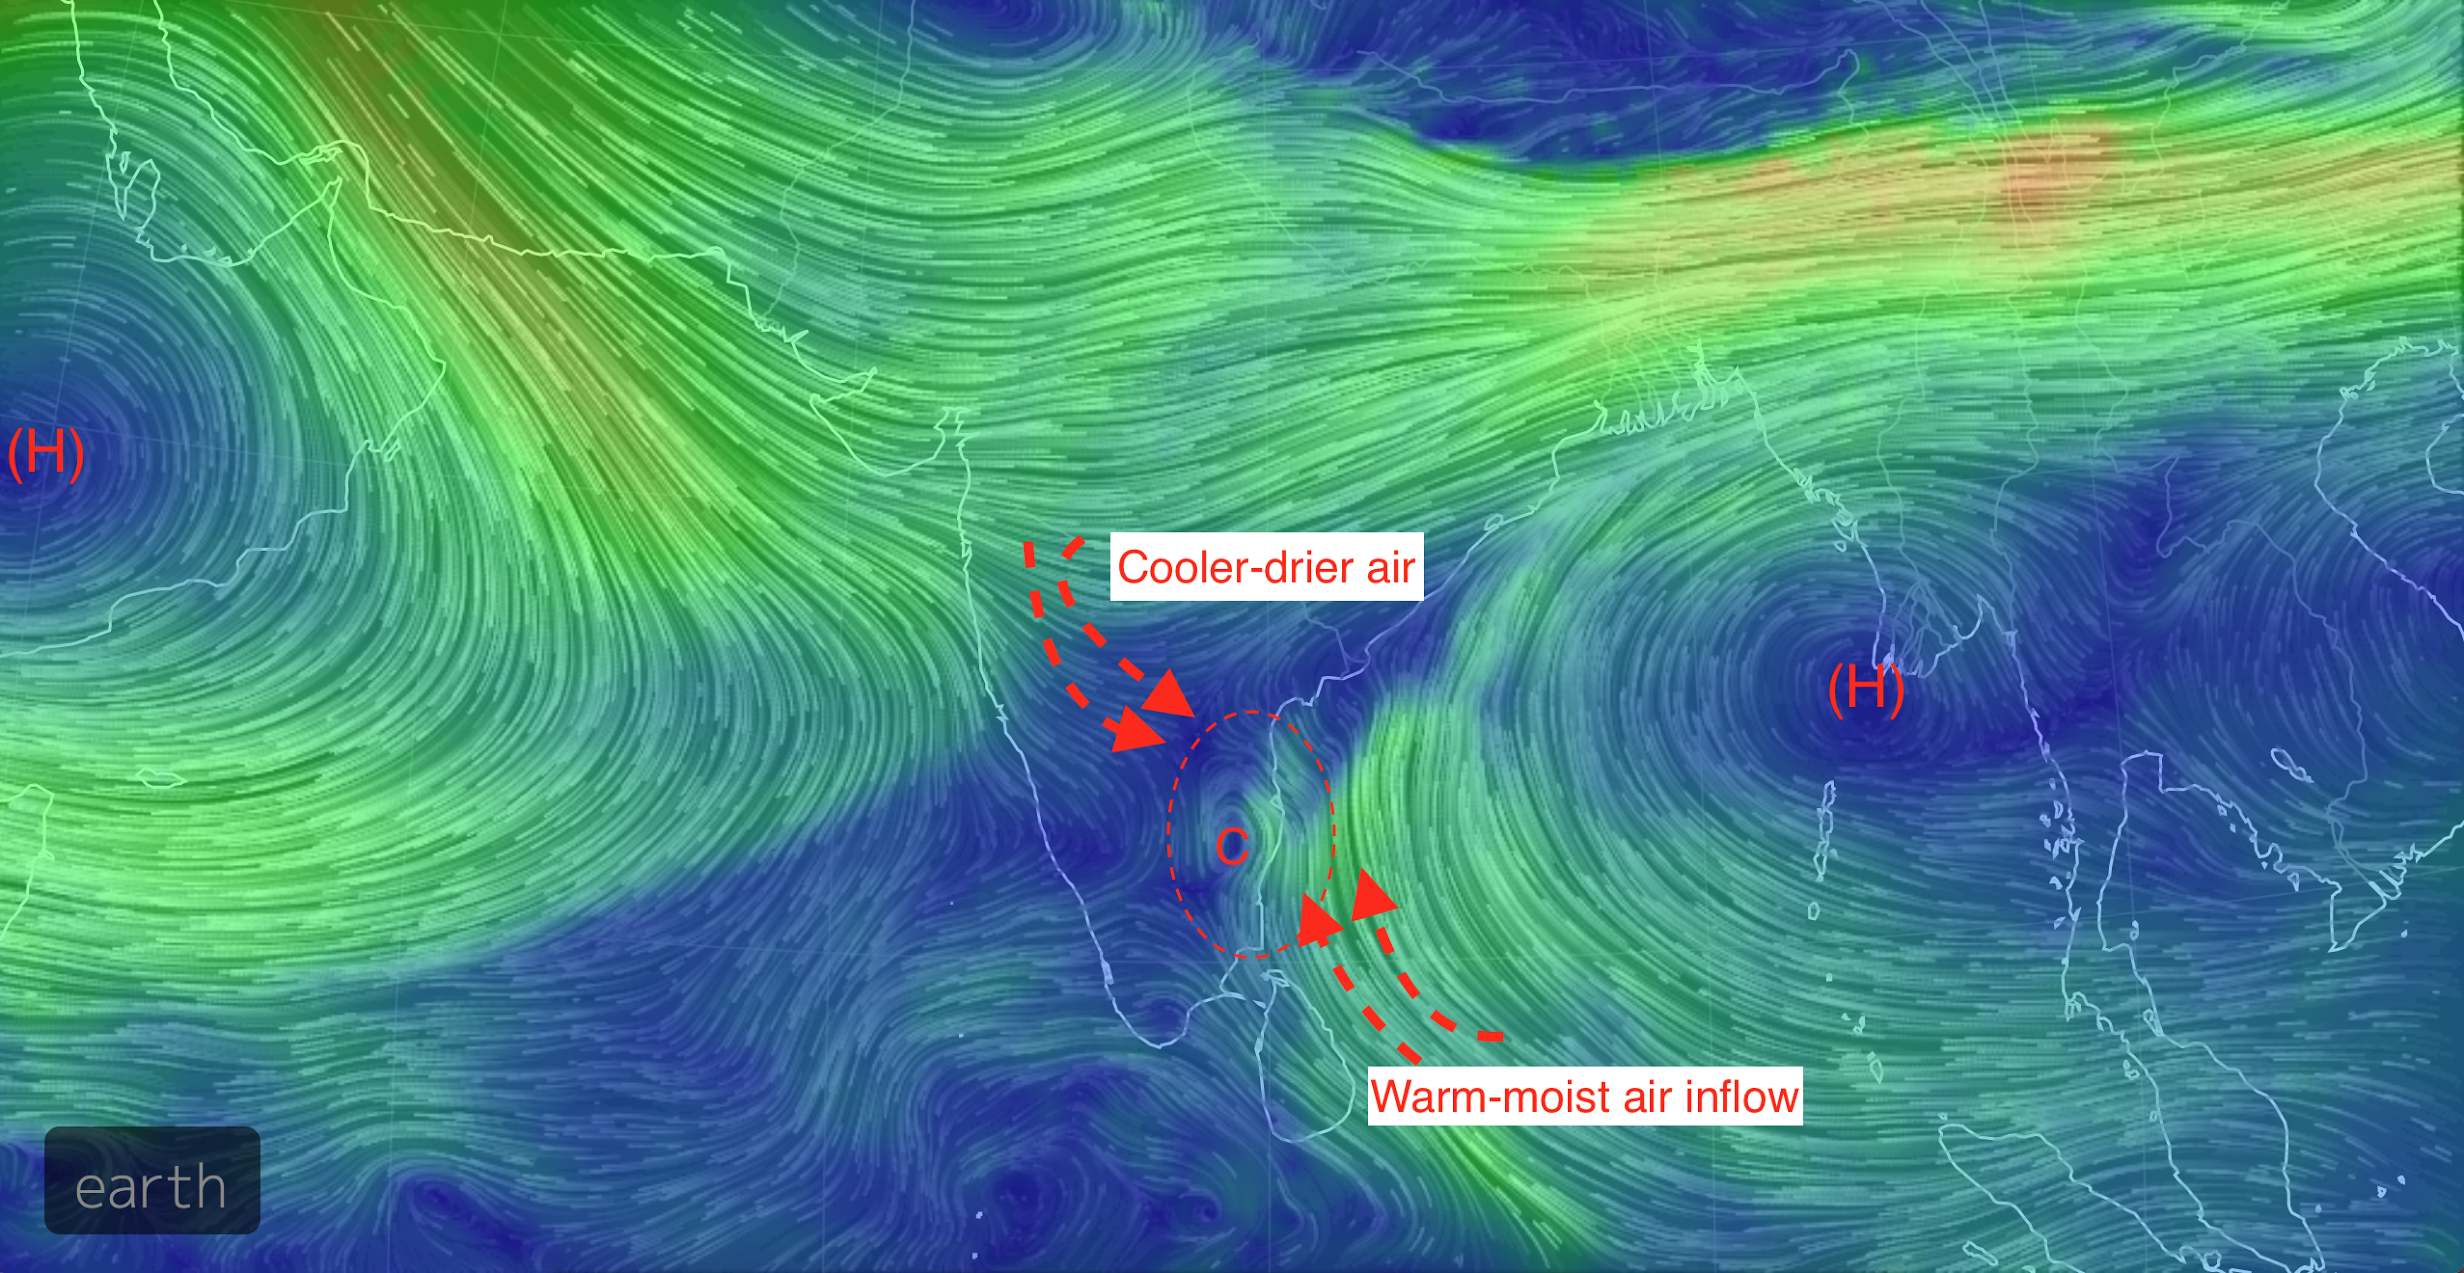 GFS model map of winds at 20,000 feet above ground simulating the situation on December 1, 2015 (Courtesy: earth.nullschool.net)